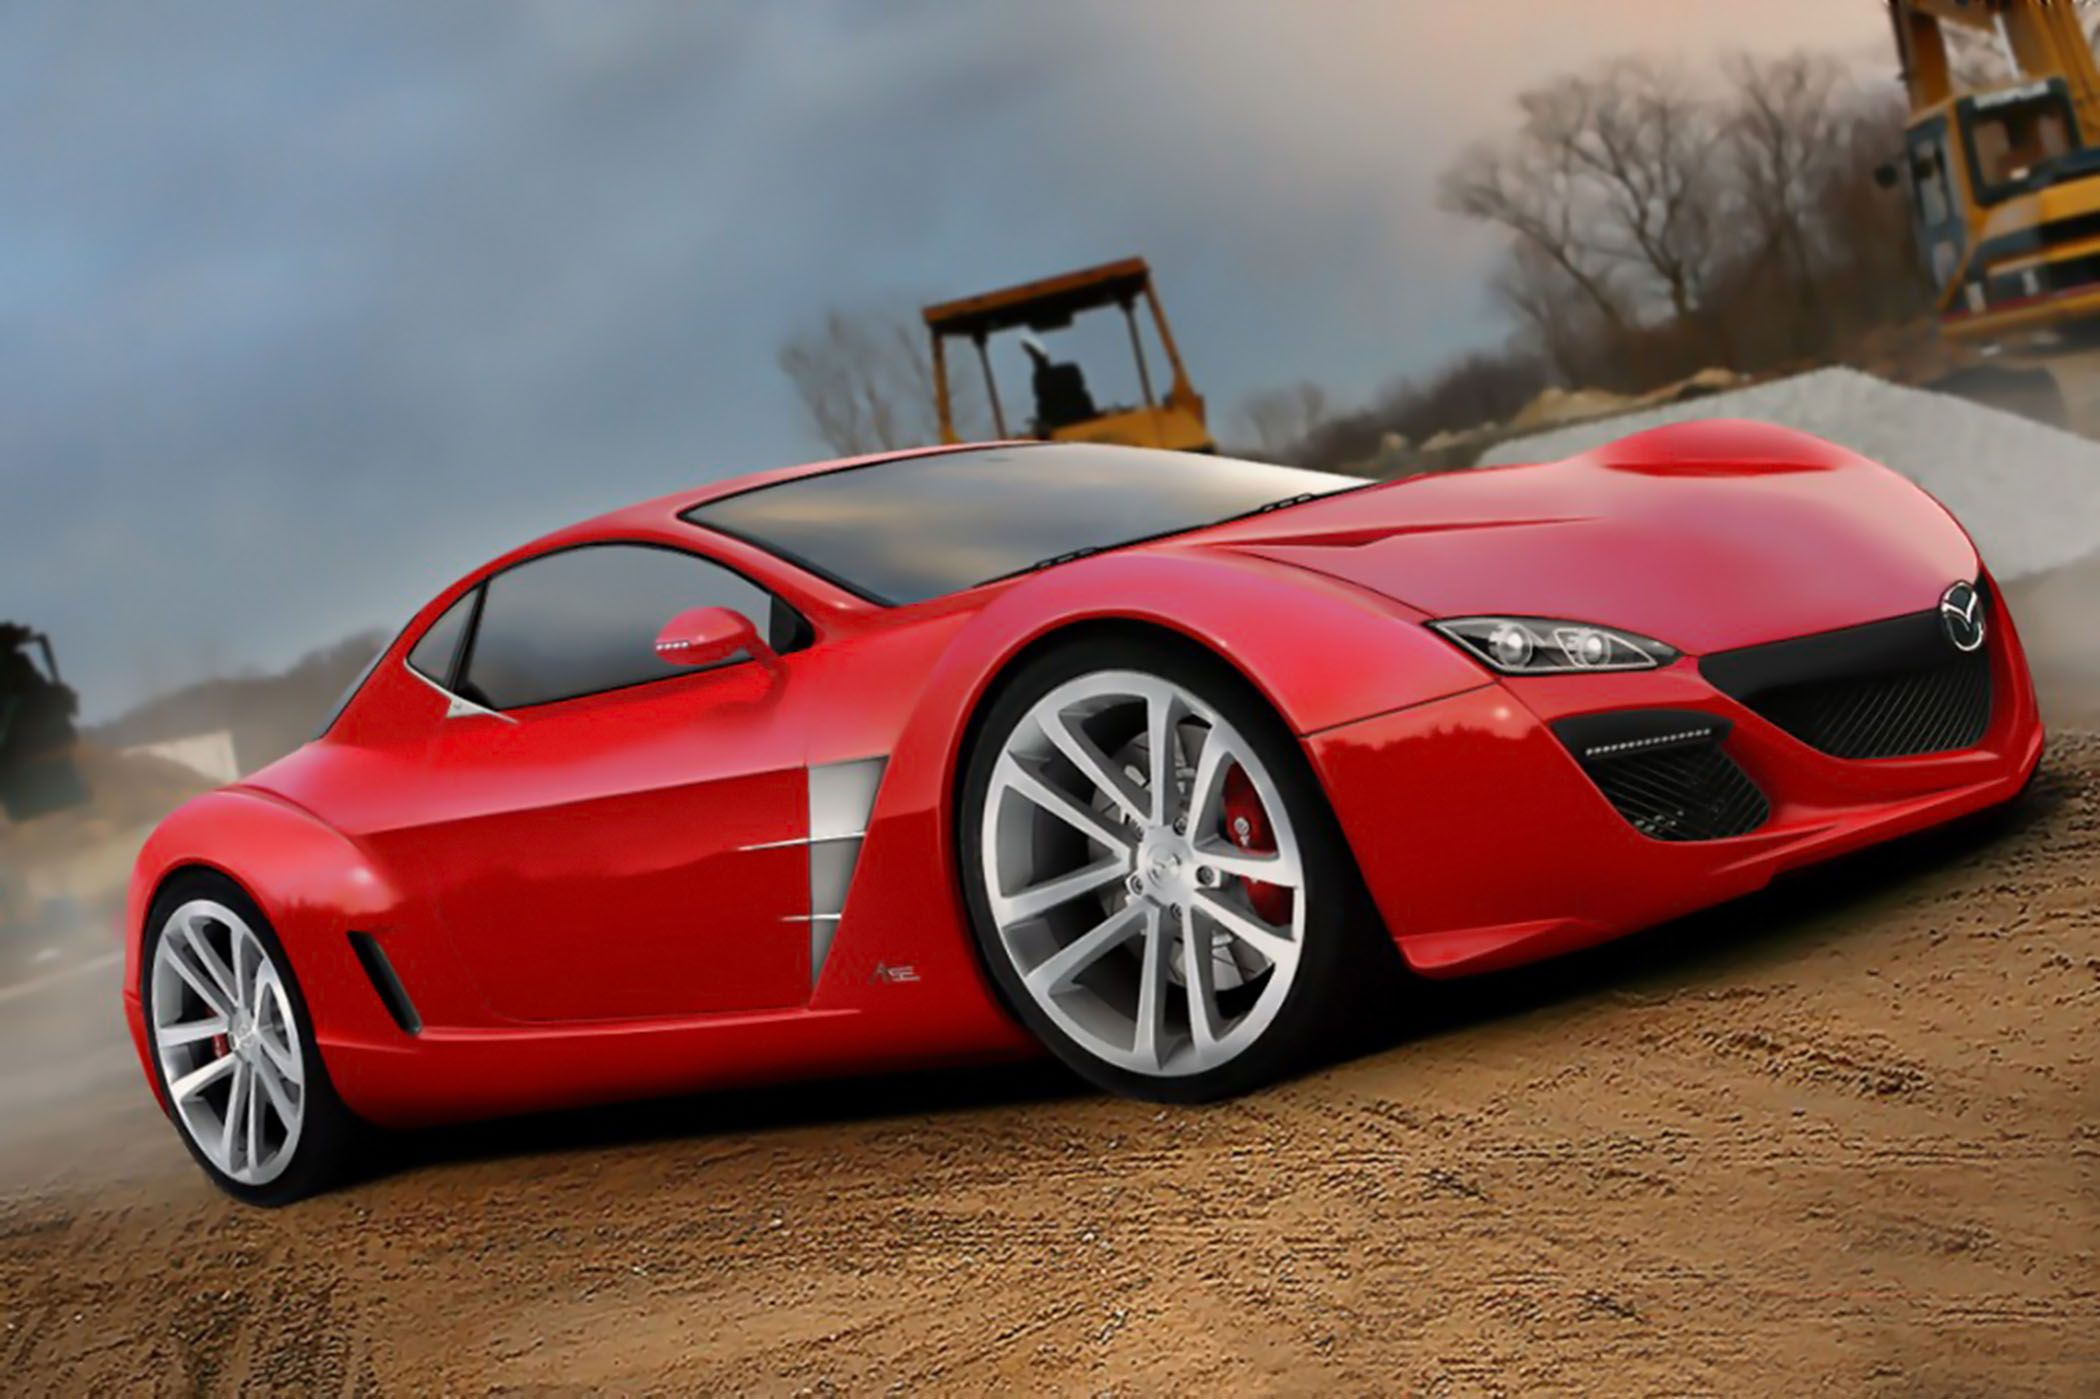 sports cars 2017 mazda rx7 specs price rx7 sports cars and